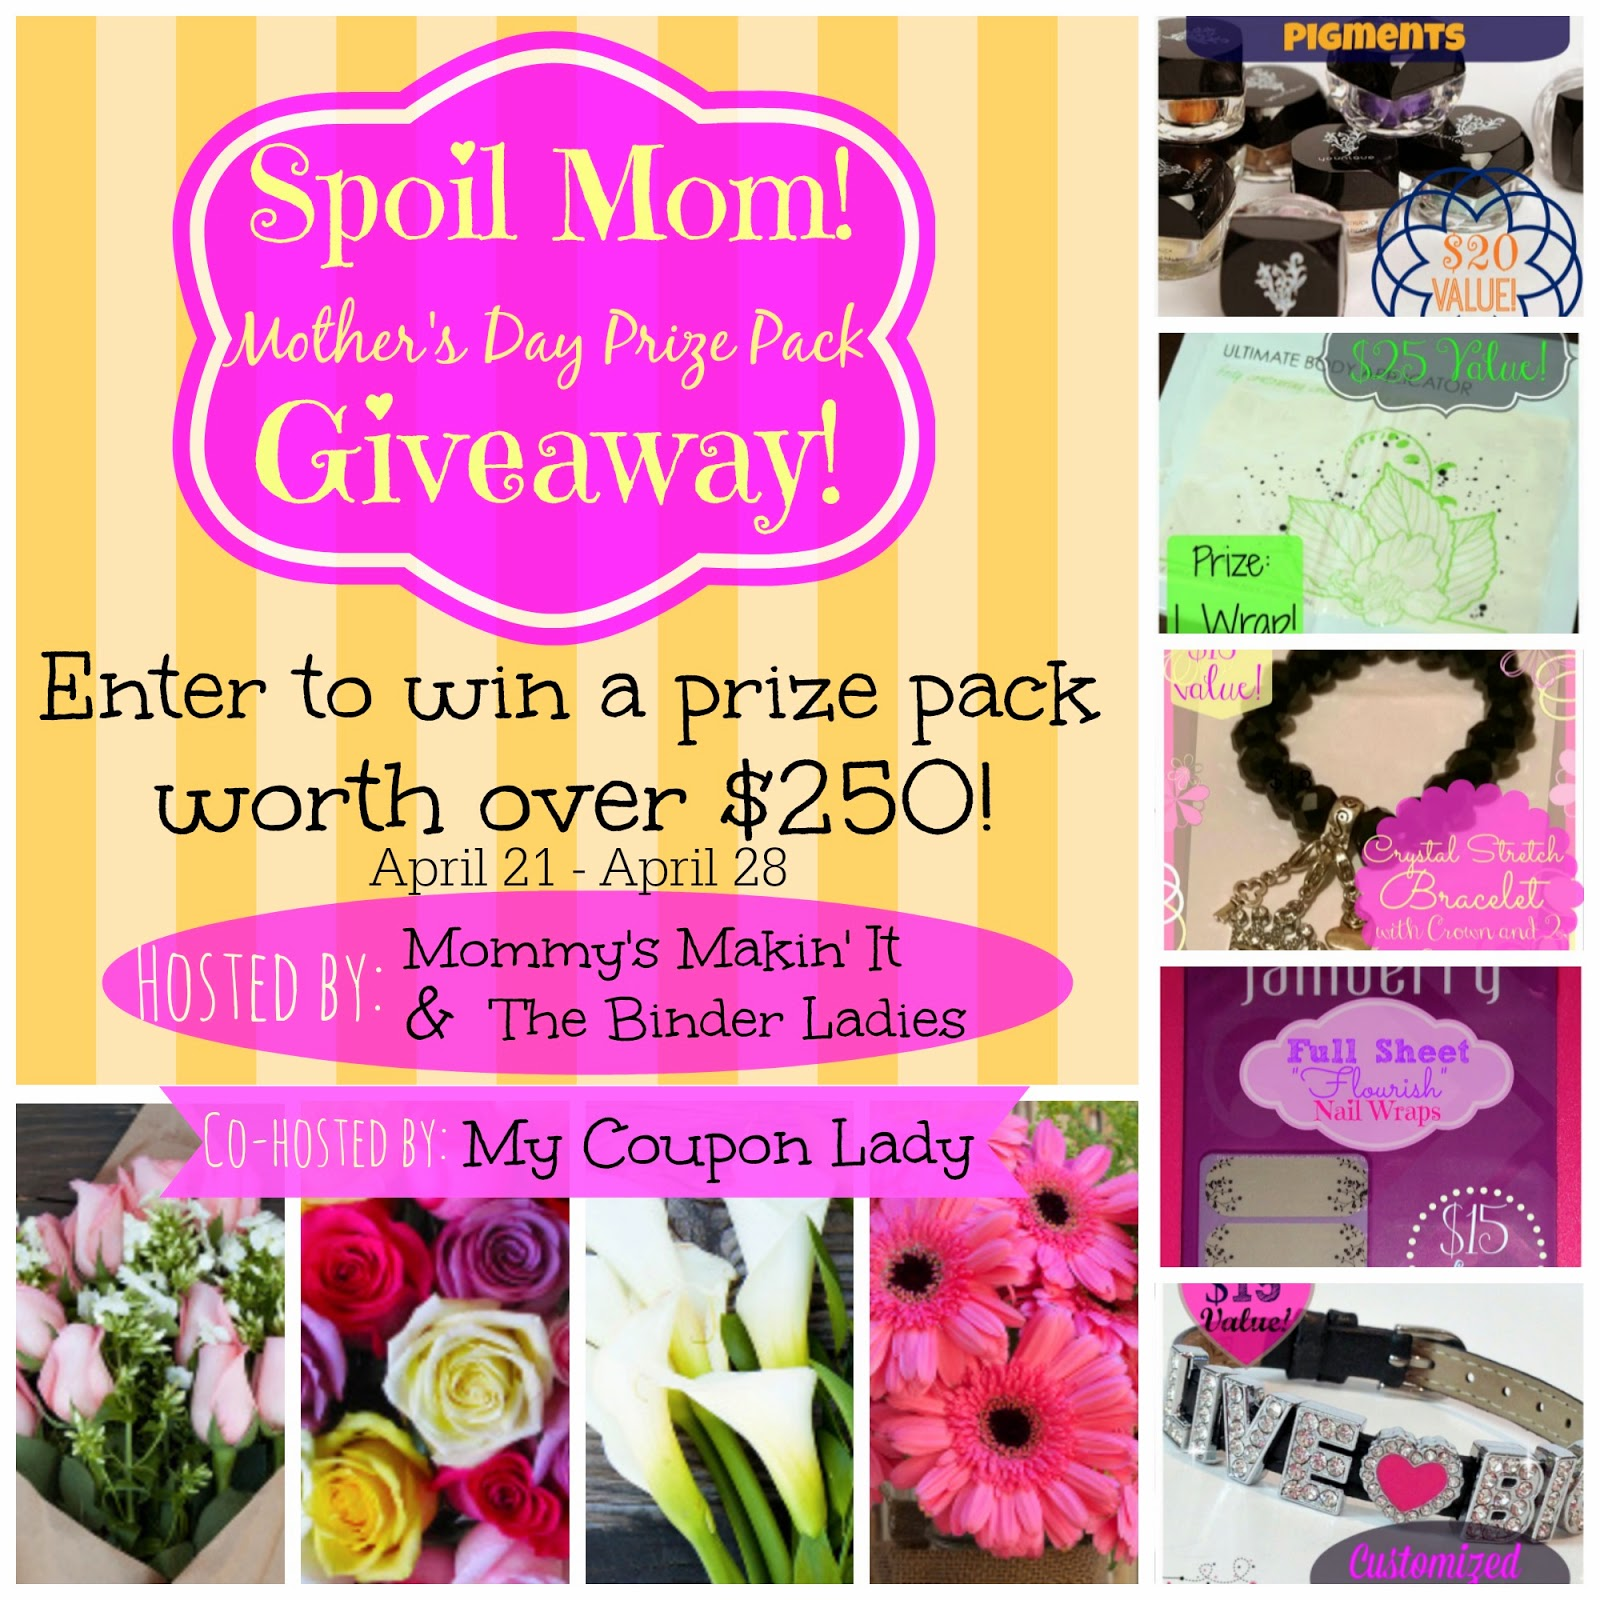 spoil mom mothers day giveaway | maegal.blogspot.com